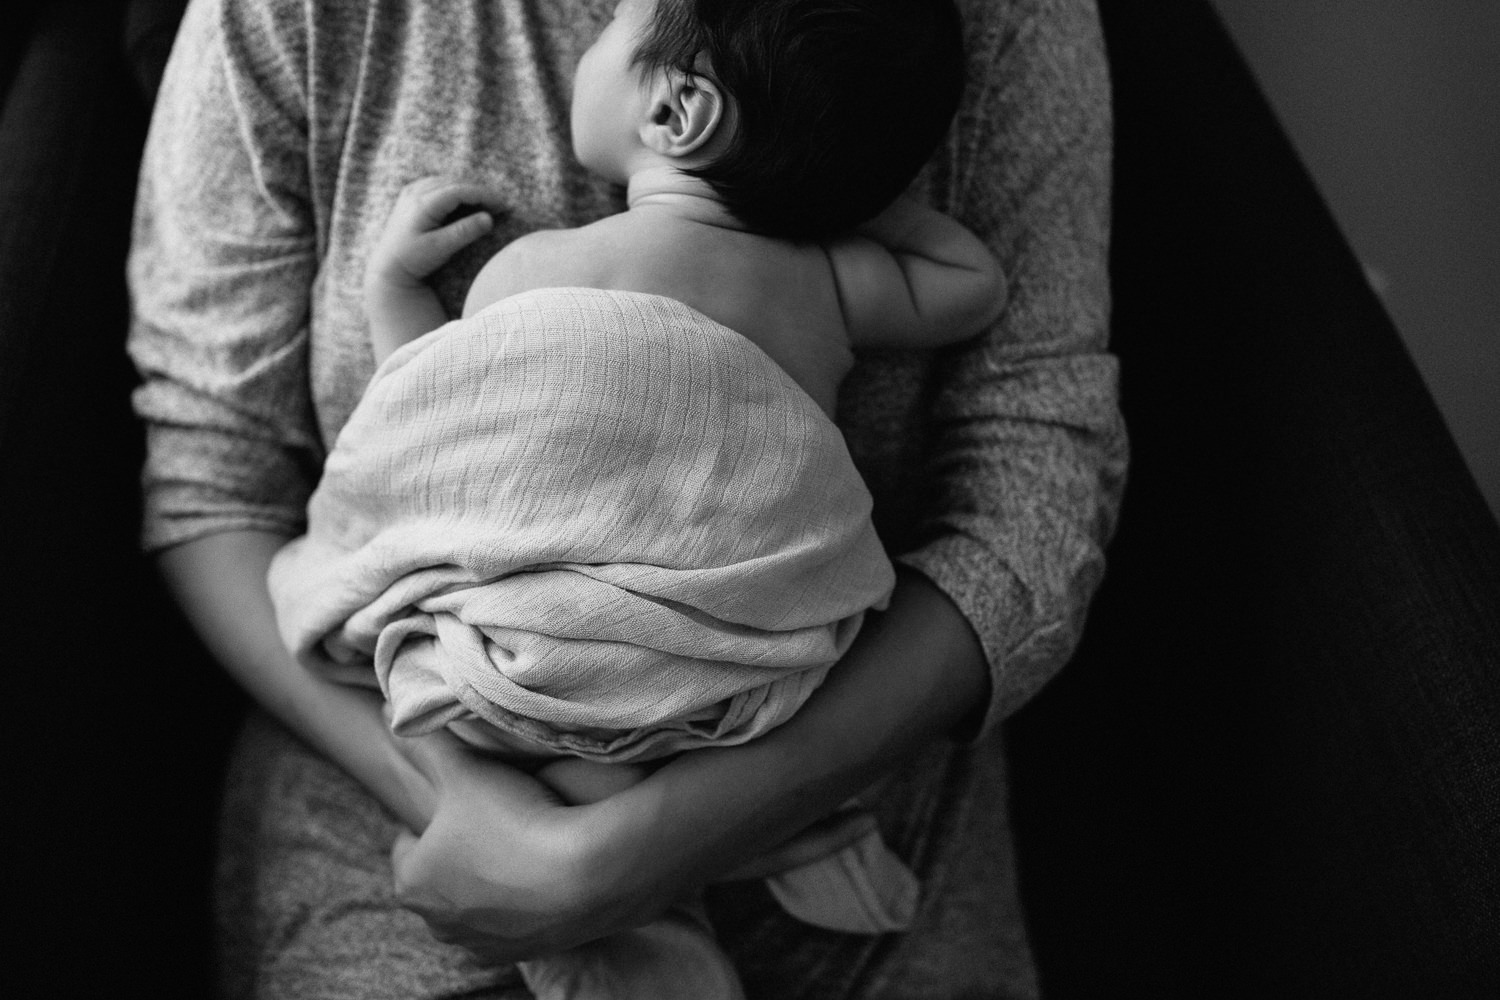 mother sitting in armchair snuggling 2 week old sleeping baby boy to her chest, son wrapped in swaddle - Newmarket Lifestyle Photos